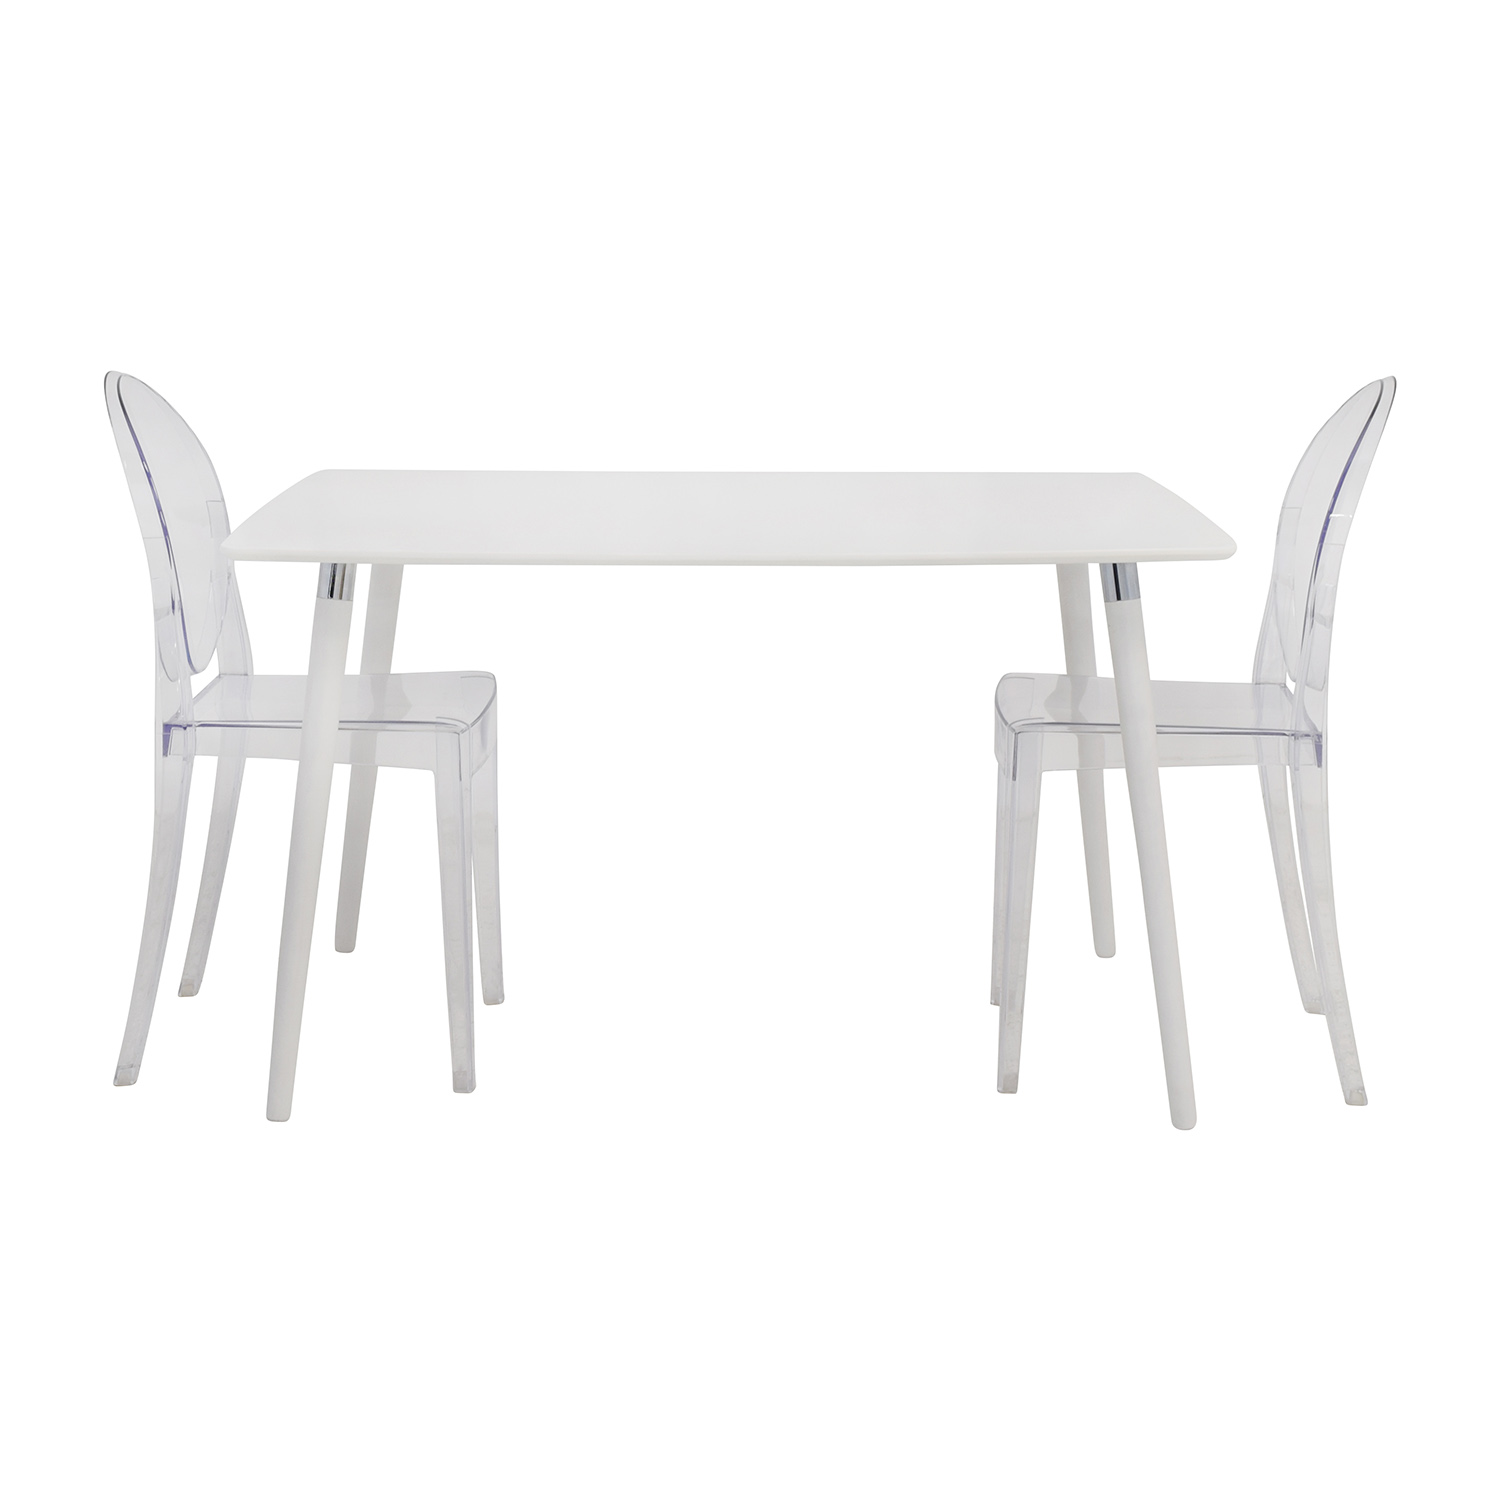 White Dining Table Set with Two Ghost Chairs price